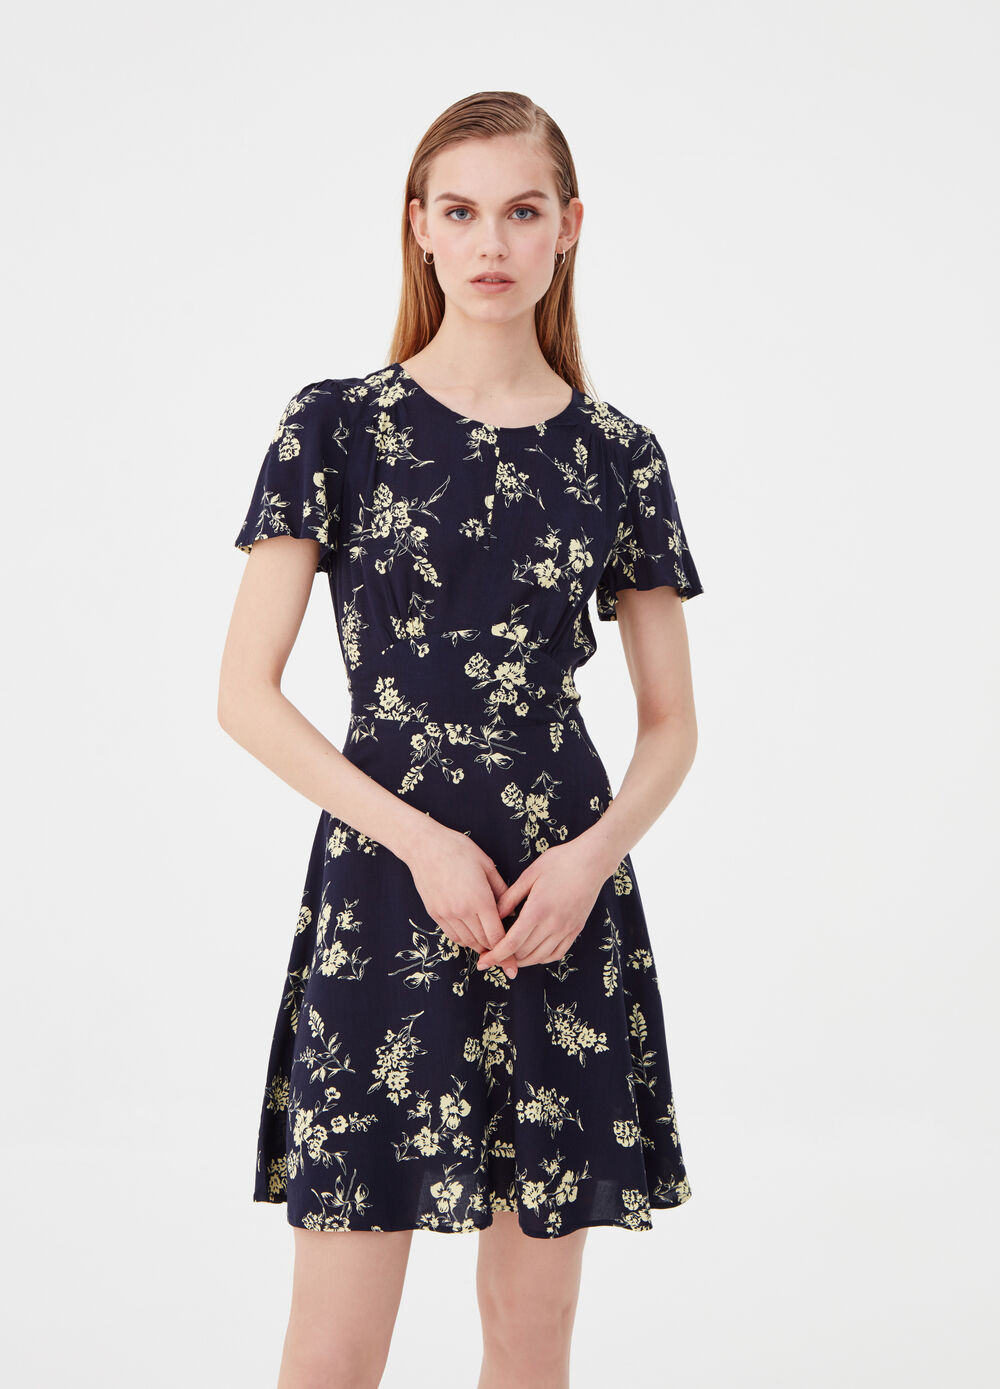 Floral dress with knotted belt